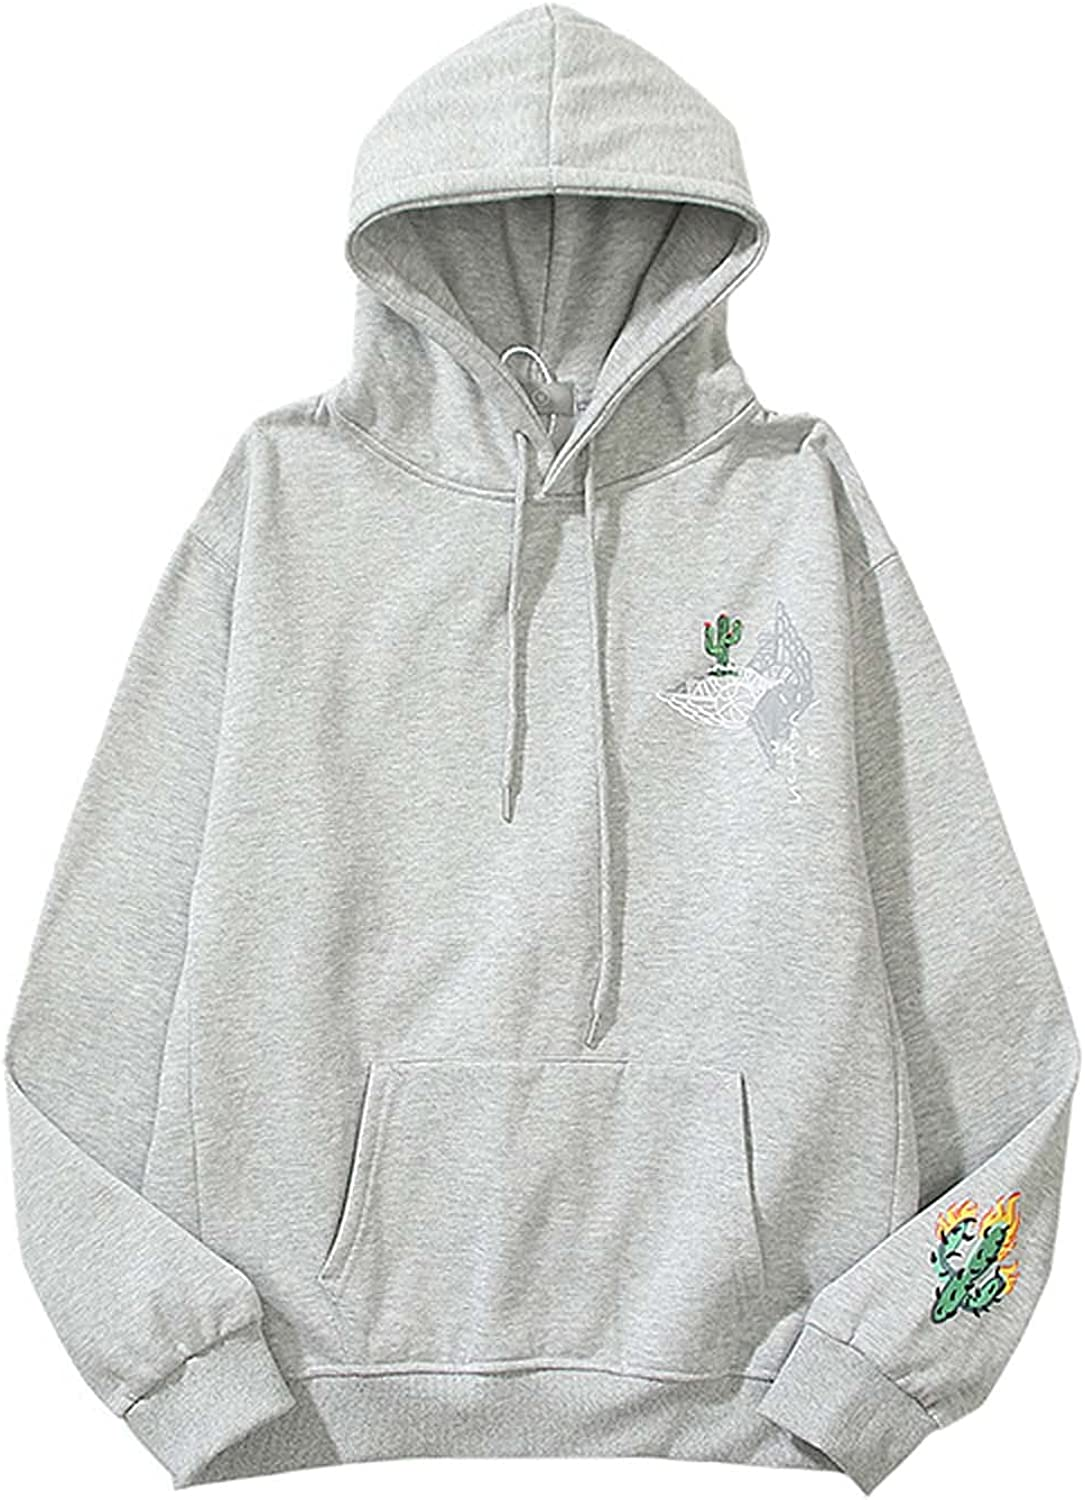 LemonLip Man's T Albuquerque Mall S Hoodie Clearance SALE Limited time AIR Pullover Stitching Cactus Printed